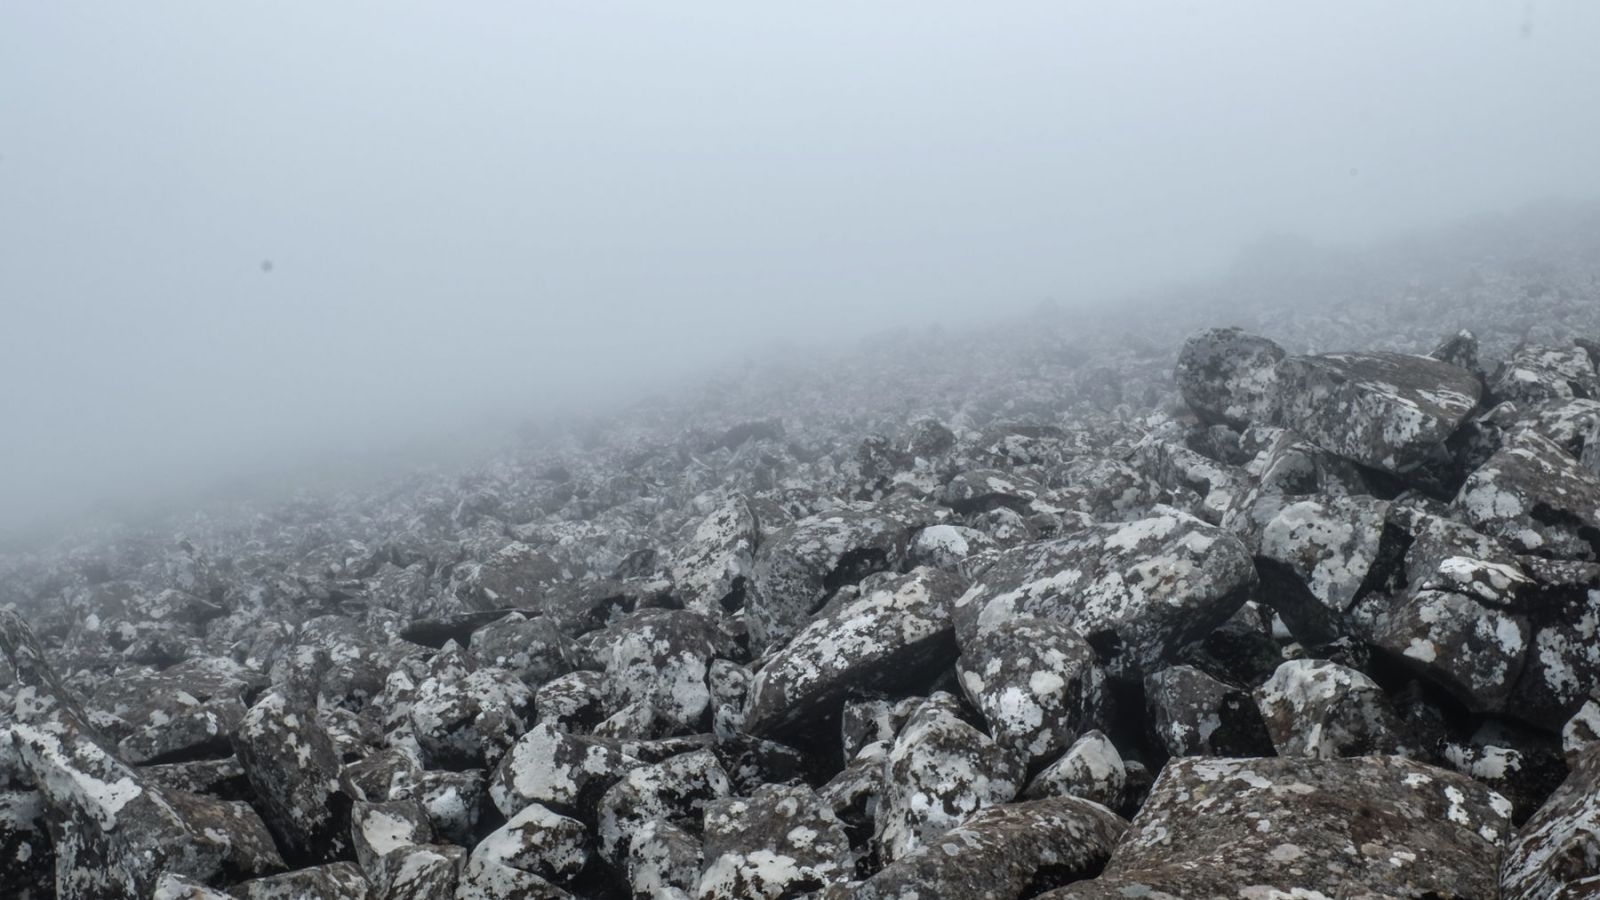 a photo of rocks covered in fog on the amathole trail.